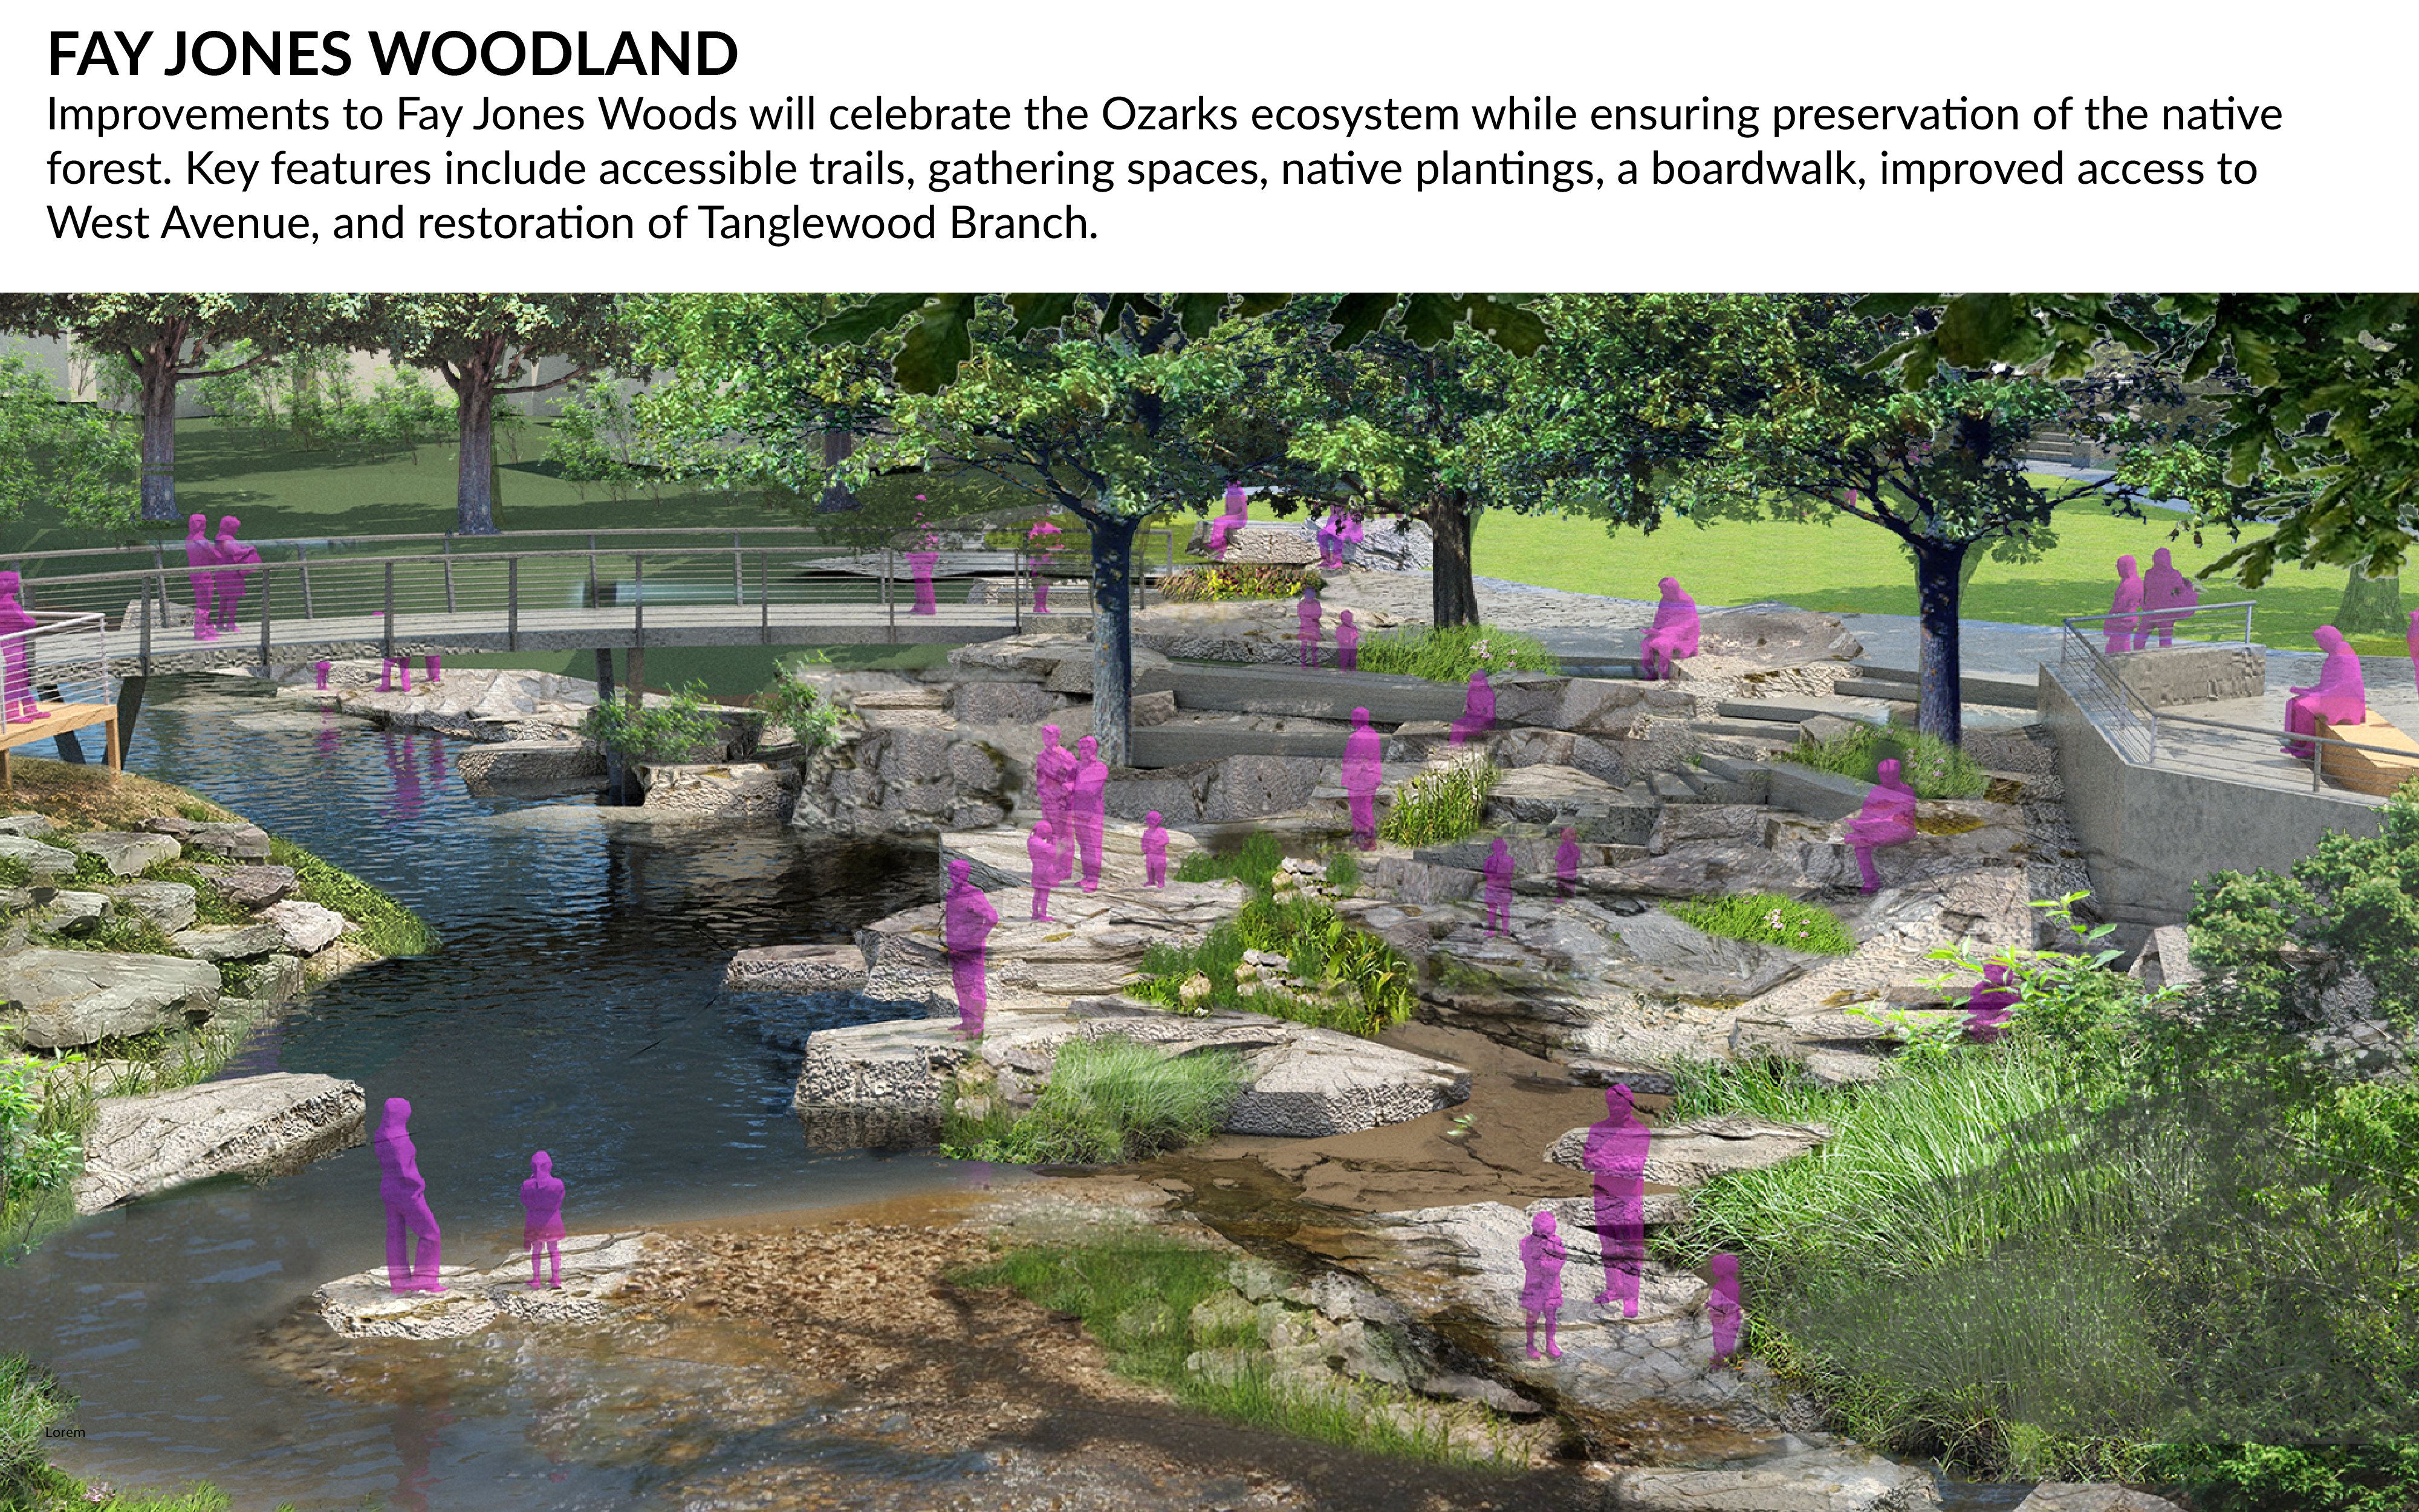 Artists rendering of improvements to Fay Jones Woods